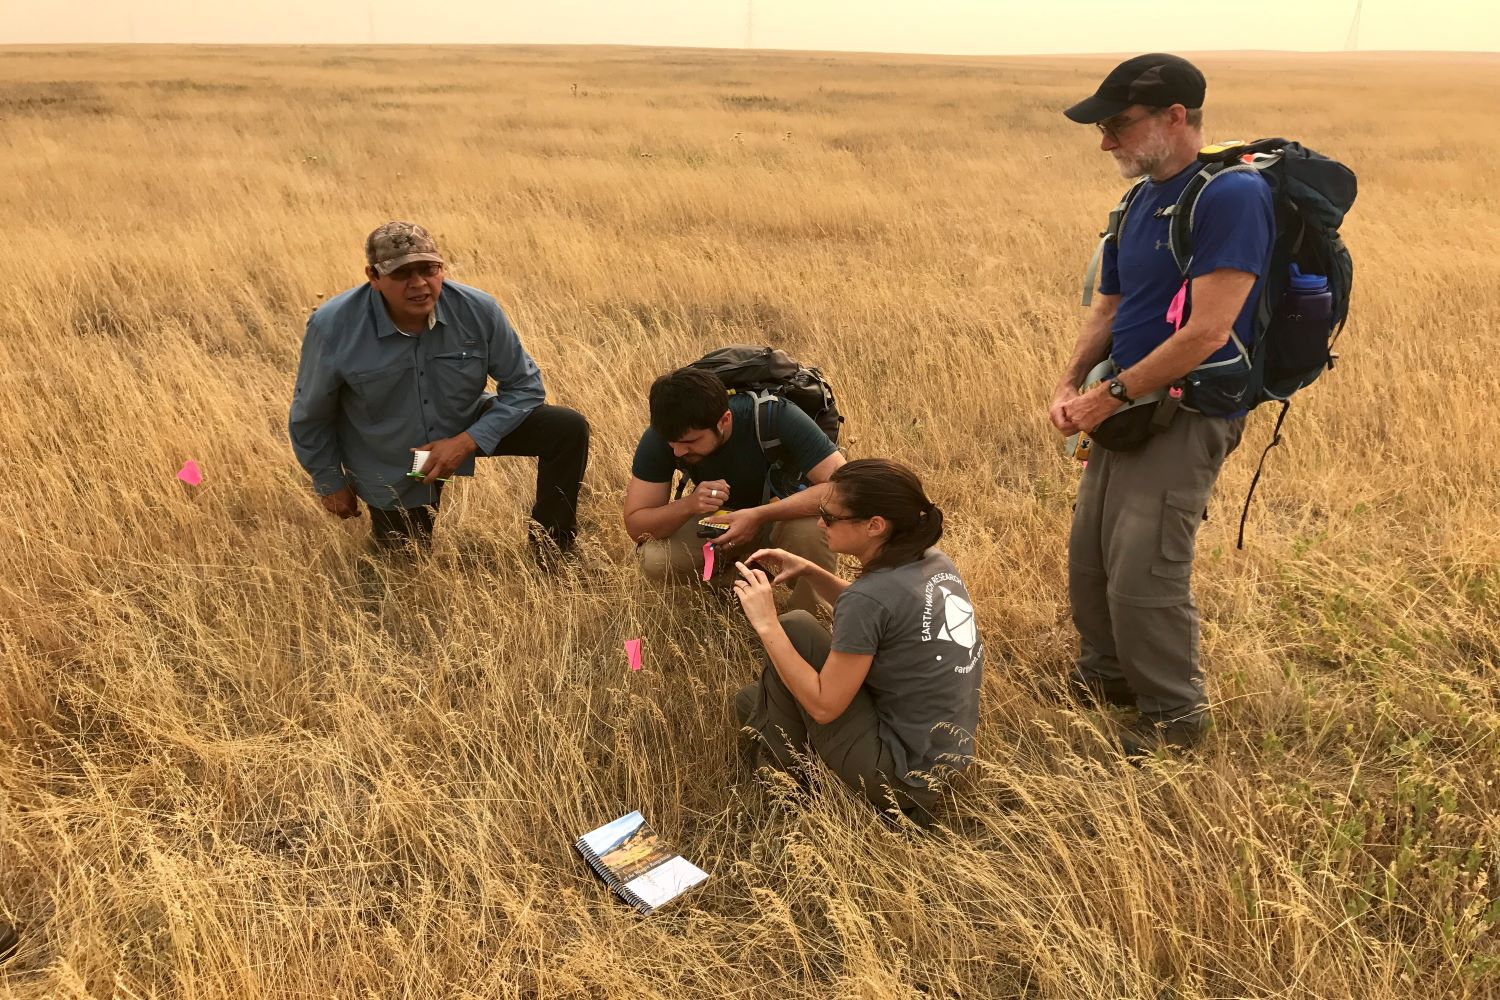 Elliot Fox, senior field technician, teaches volunteers about native and non-native grasses and bison habitat. (Photo: Stephen Hart)